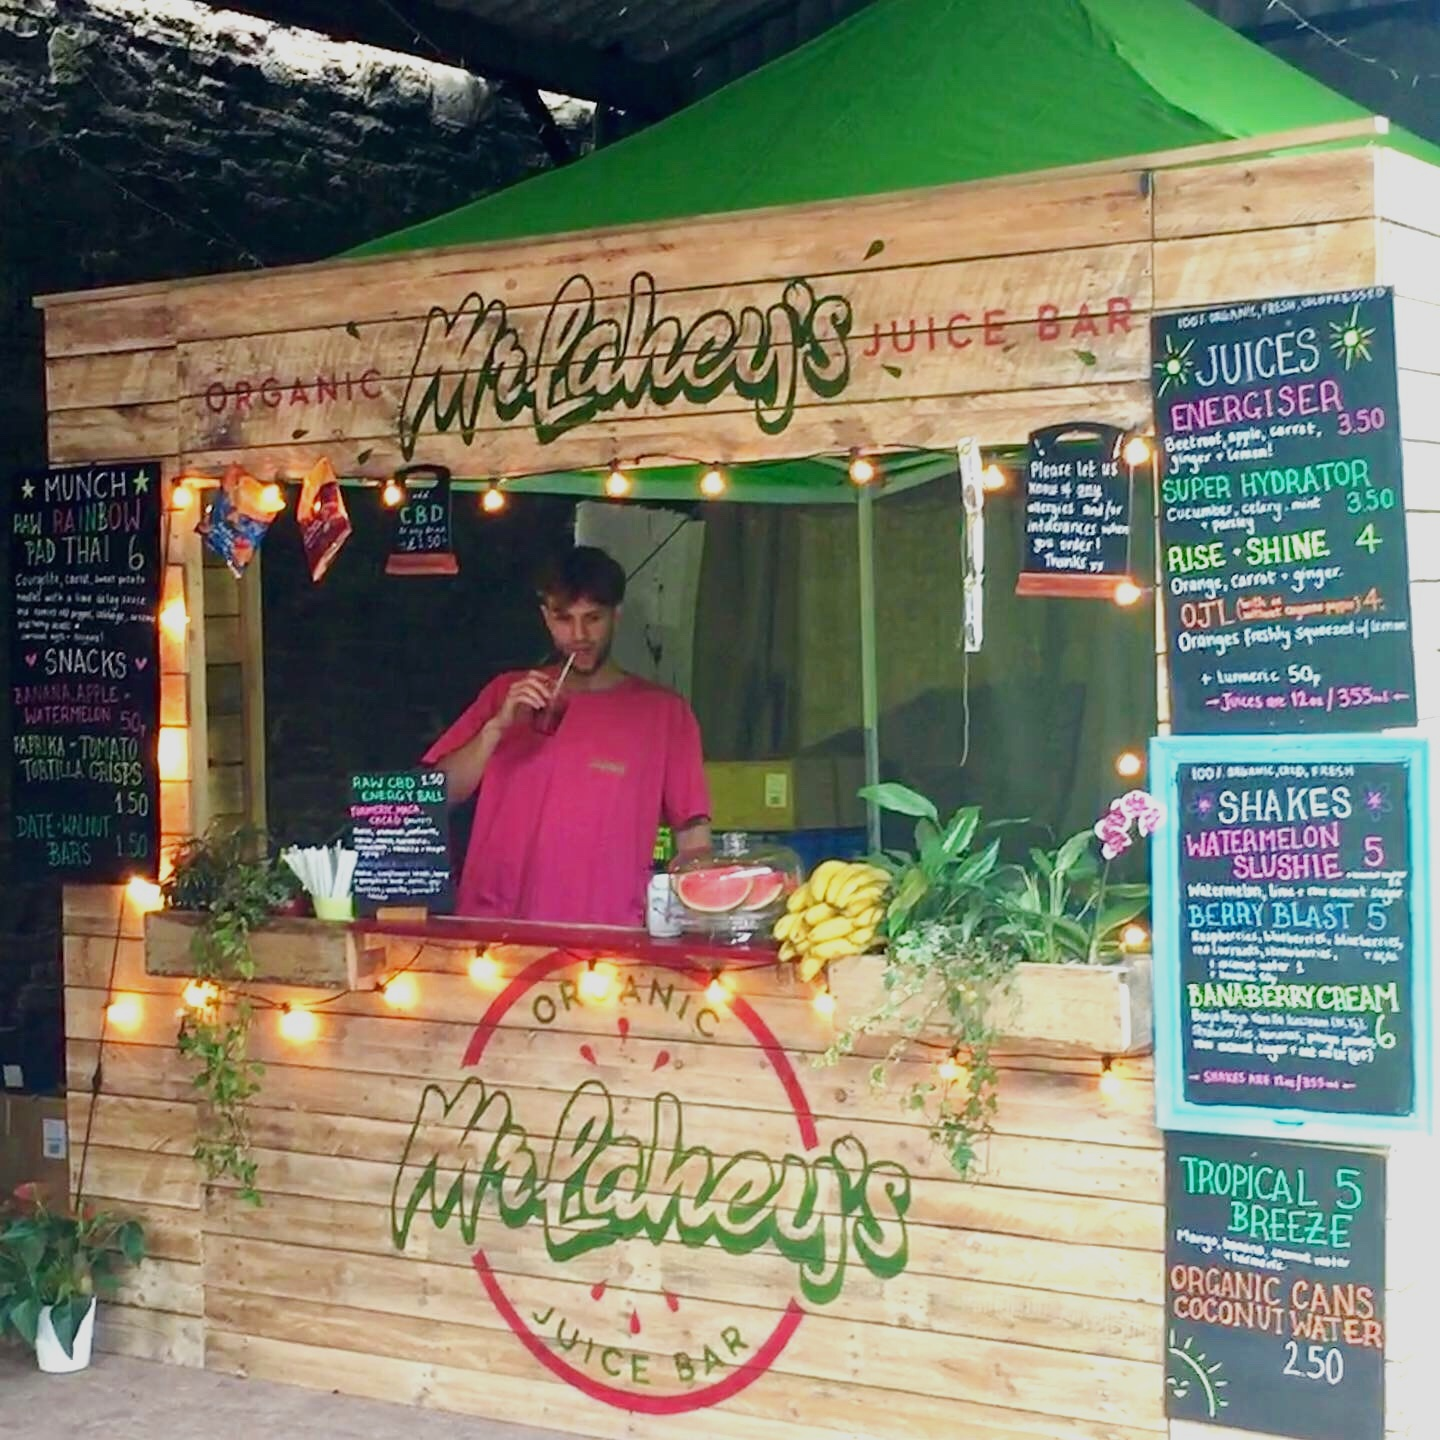 Events - We are open for bookings! We can pop up anywhere and dish out our delicious juices to the masses. Any questions or queries please contact us below.